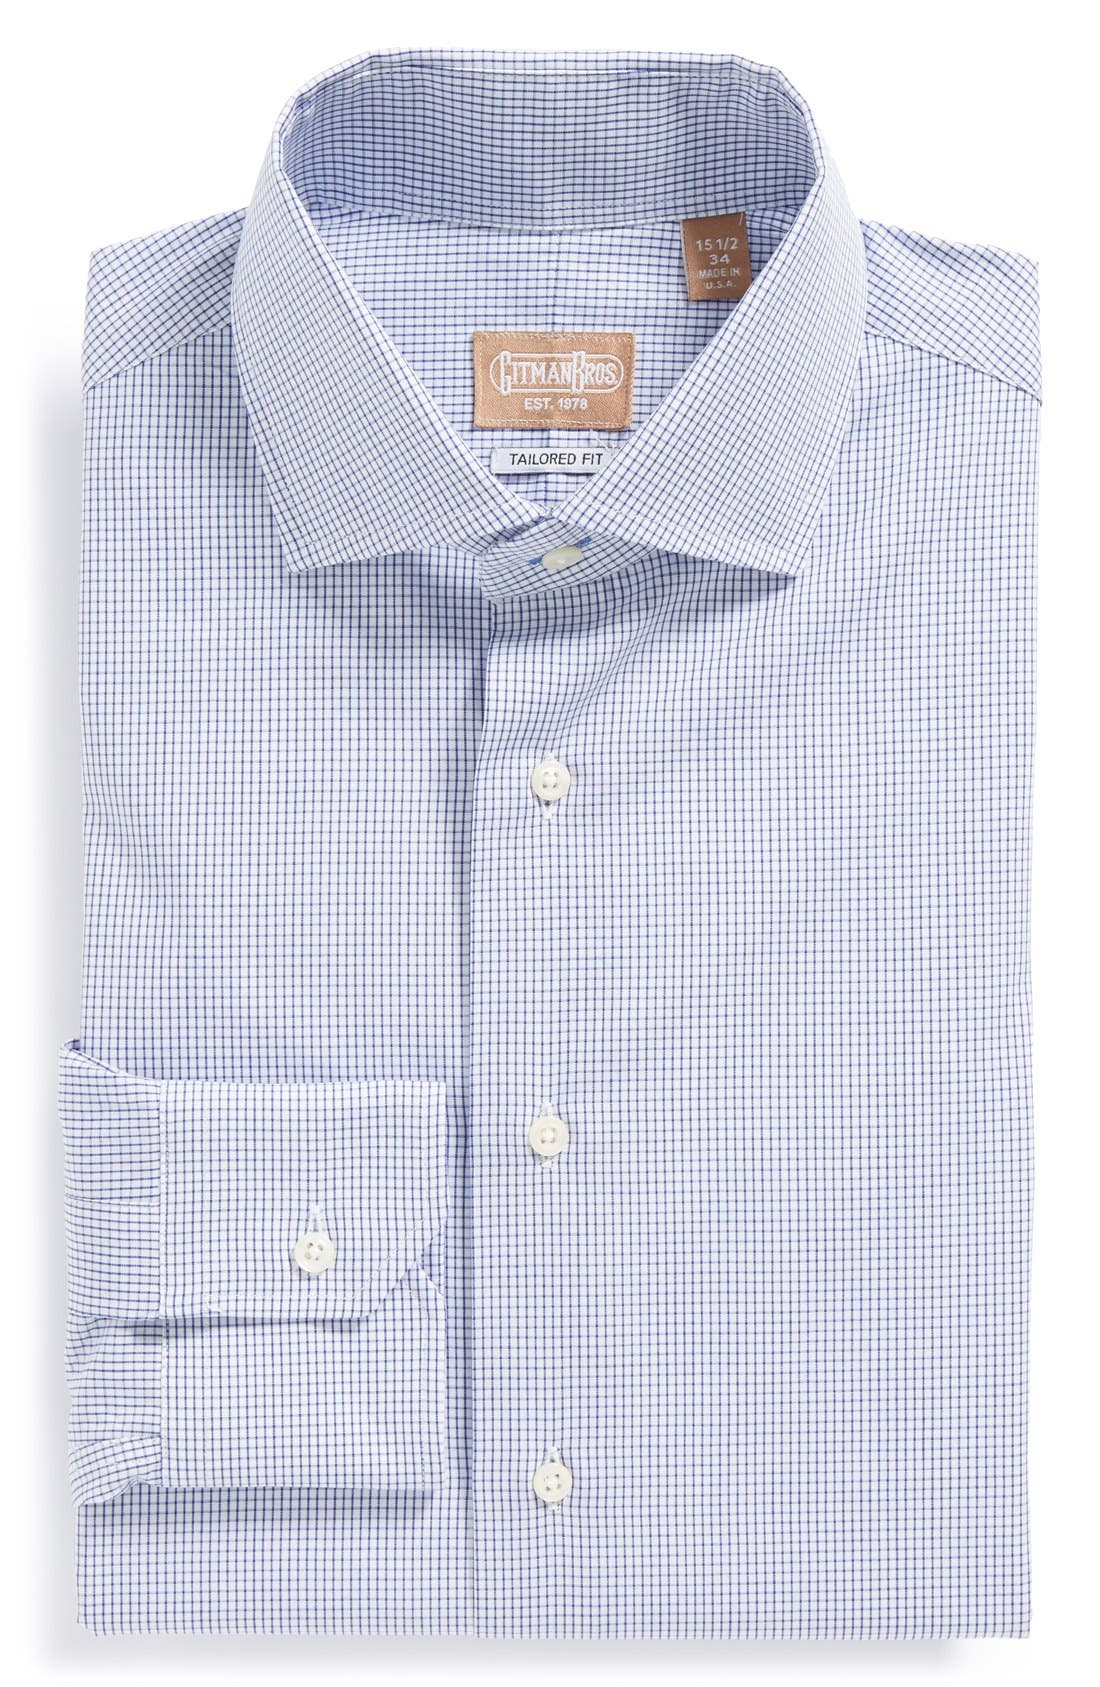 Alternate Image 1 Selected - Gitman Tailored Fit Gingham Dress Shirt